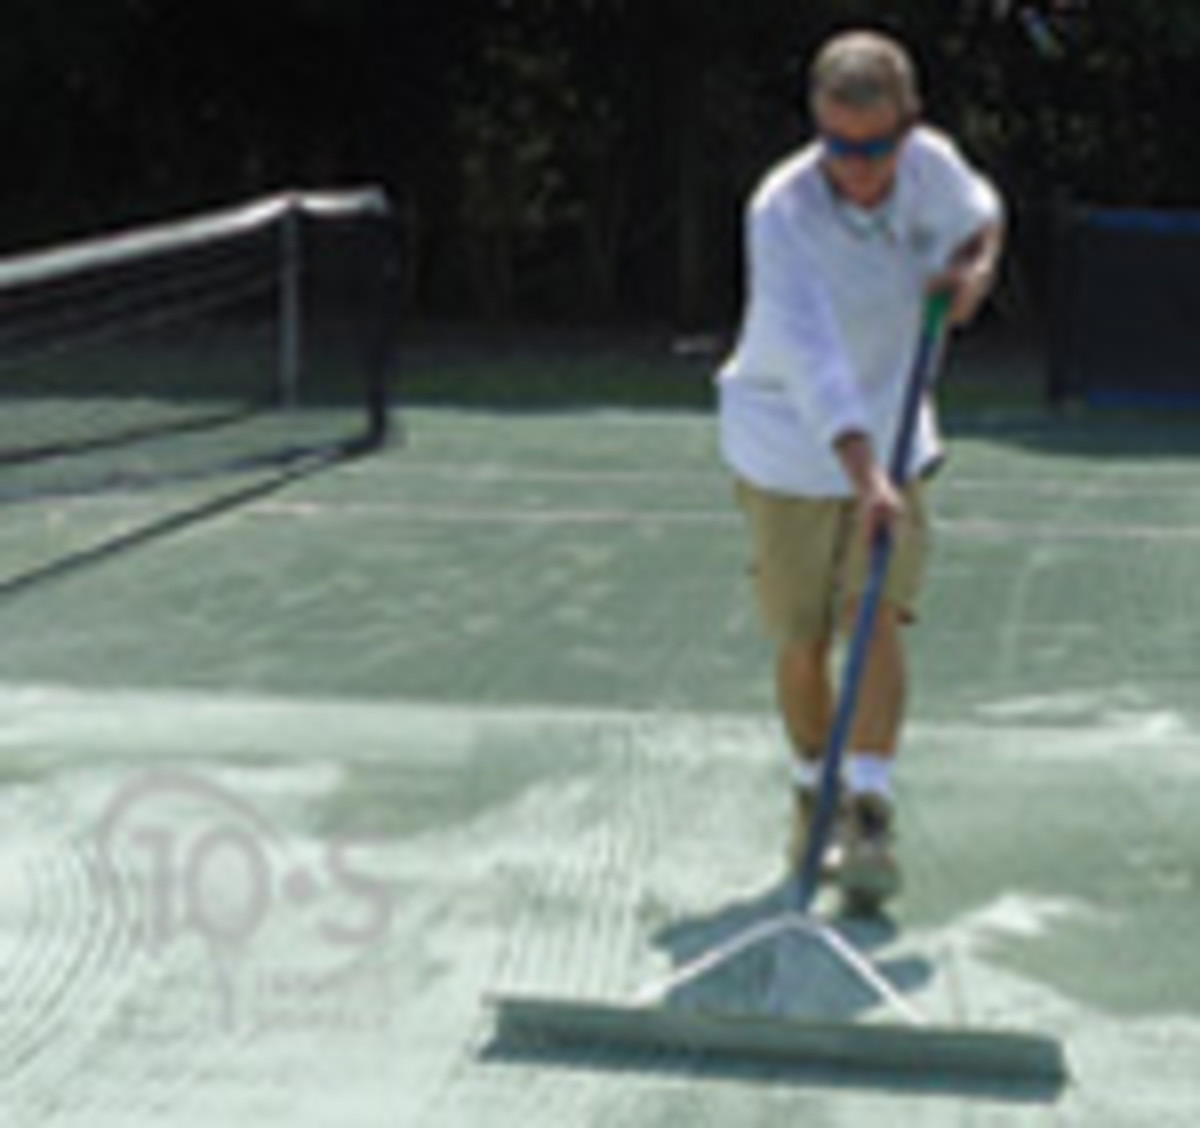 Court Maintenance Guidelines